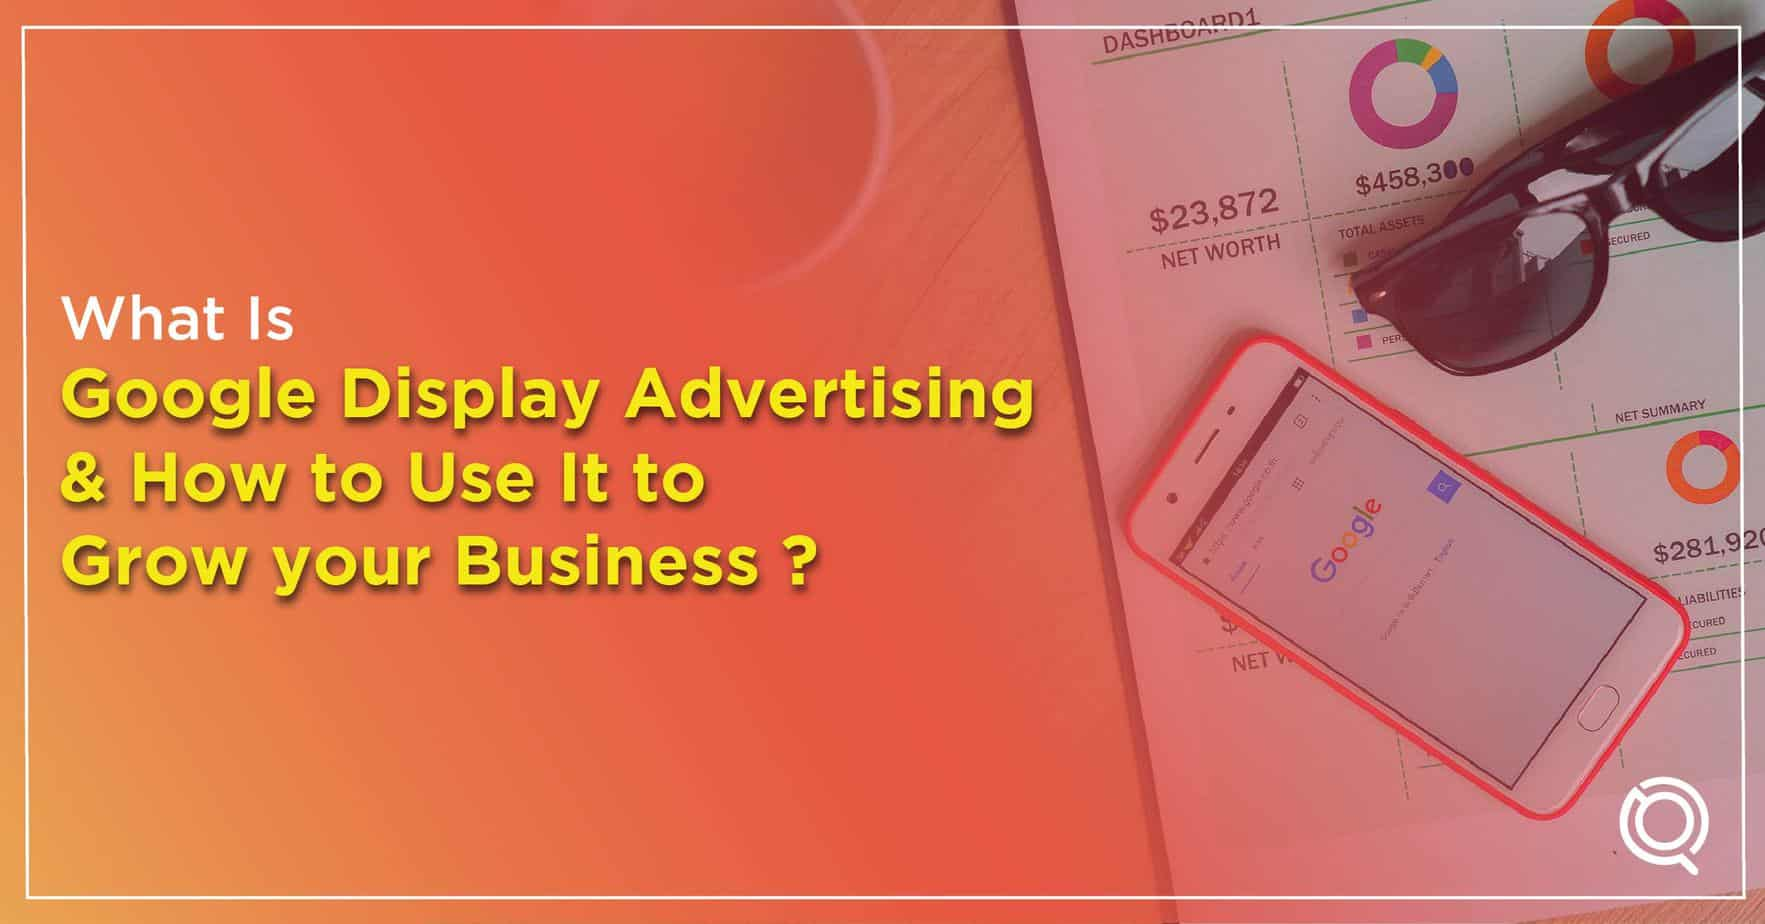 What is Google Display Ads & How to Use It to Grow your Business - One Search Pro Digital Marketing Agency Malaysia